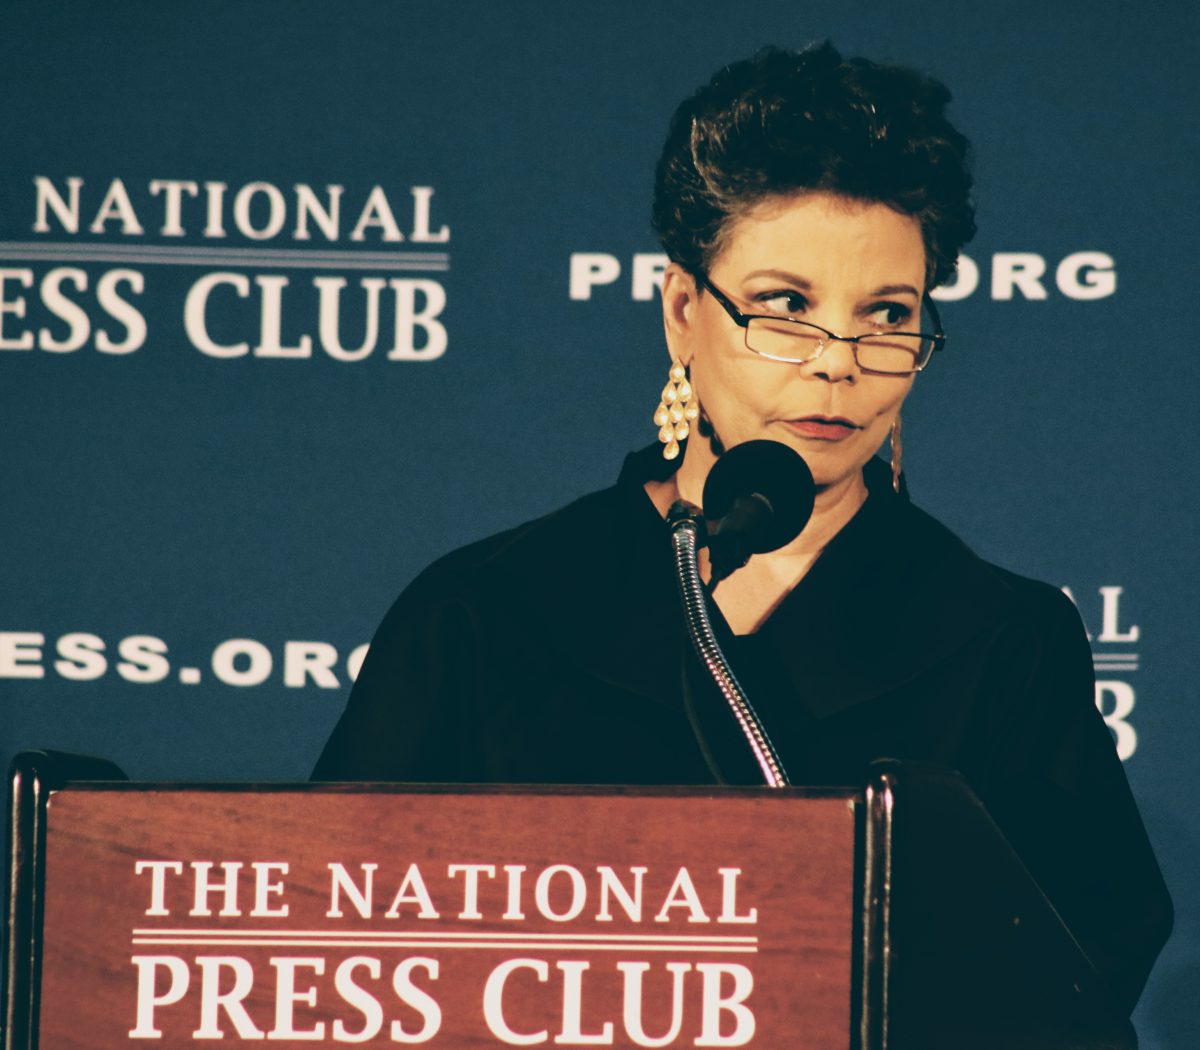 Maureen Bunyan, mistress of ceremonies at the inauguration gala for Jeffrey Ballou as the 110th President of the National Press Club on Saturday, Jan. 14. /Photo by Shevry Lassiter